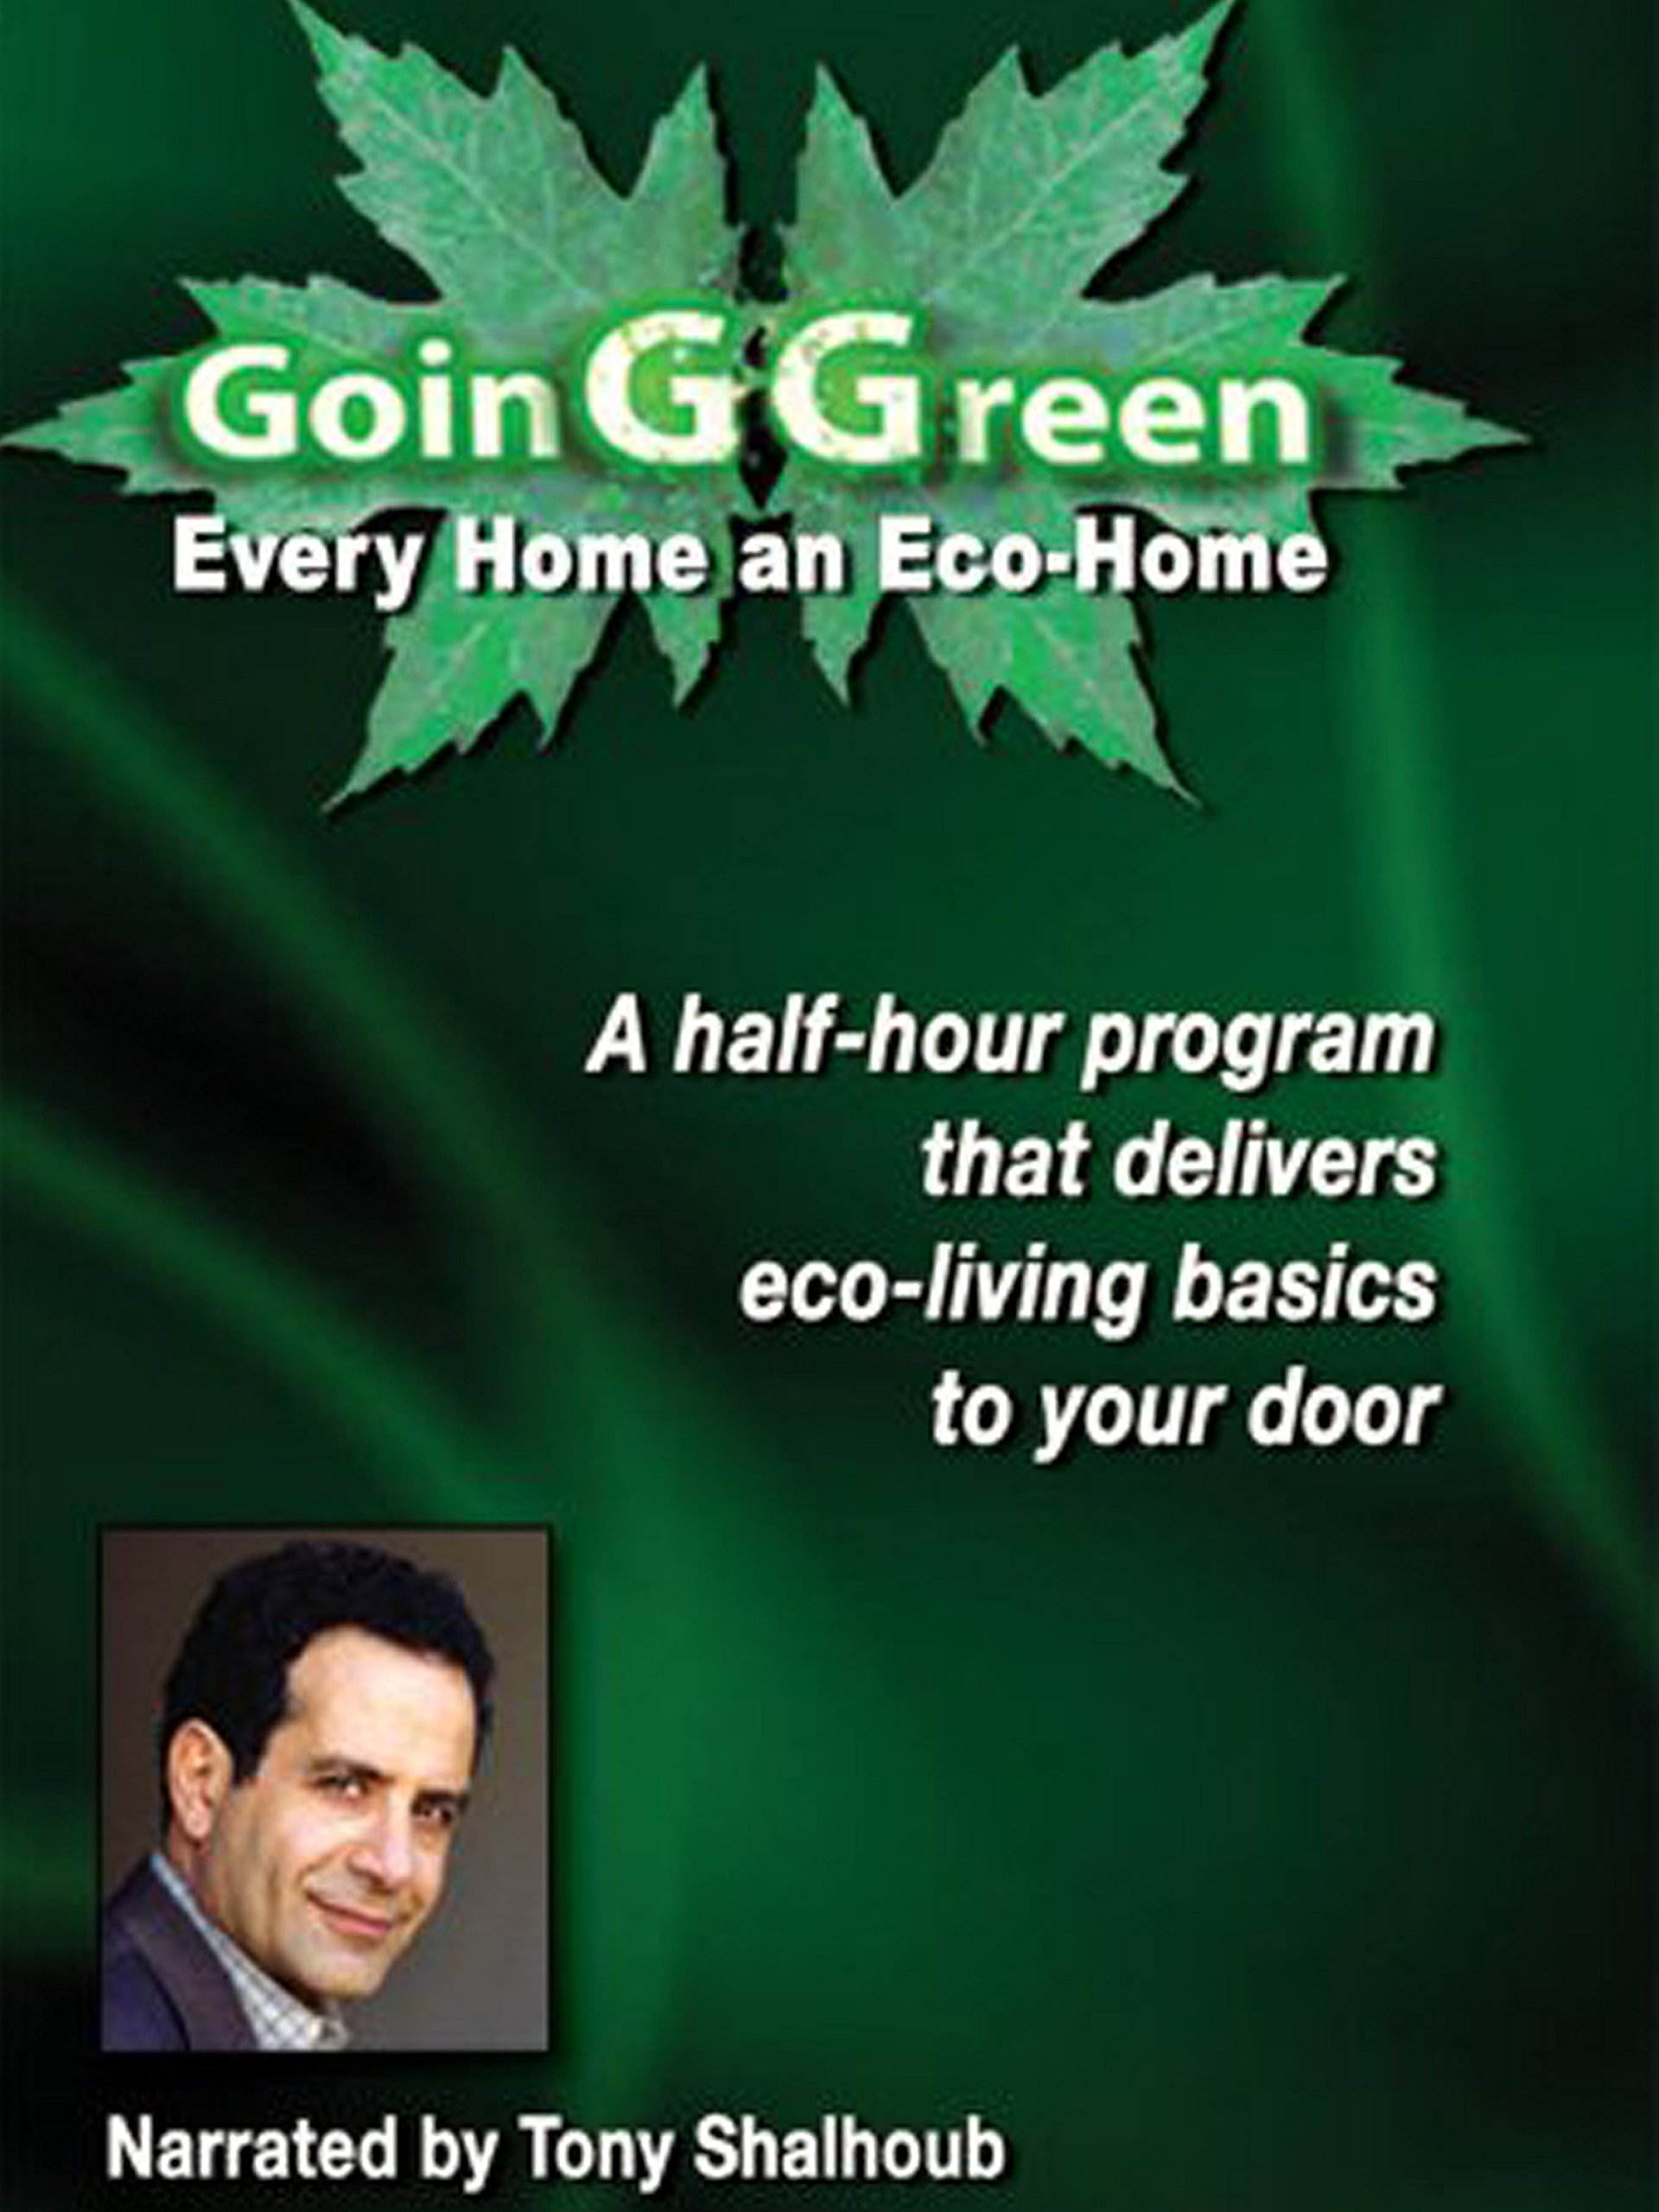 Going Green: Every Home an Eco-Home